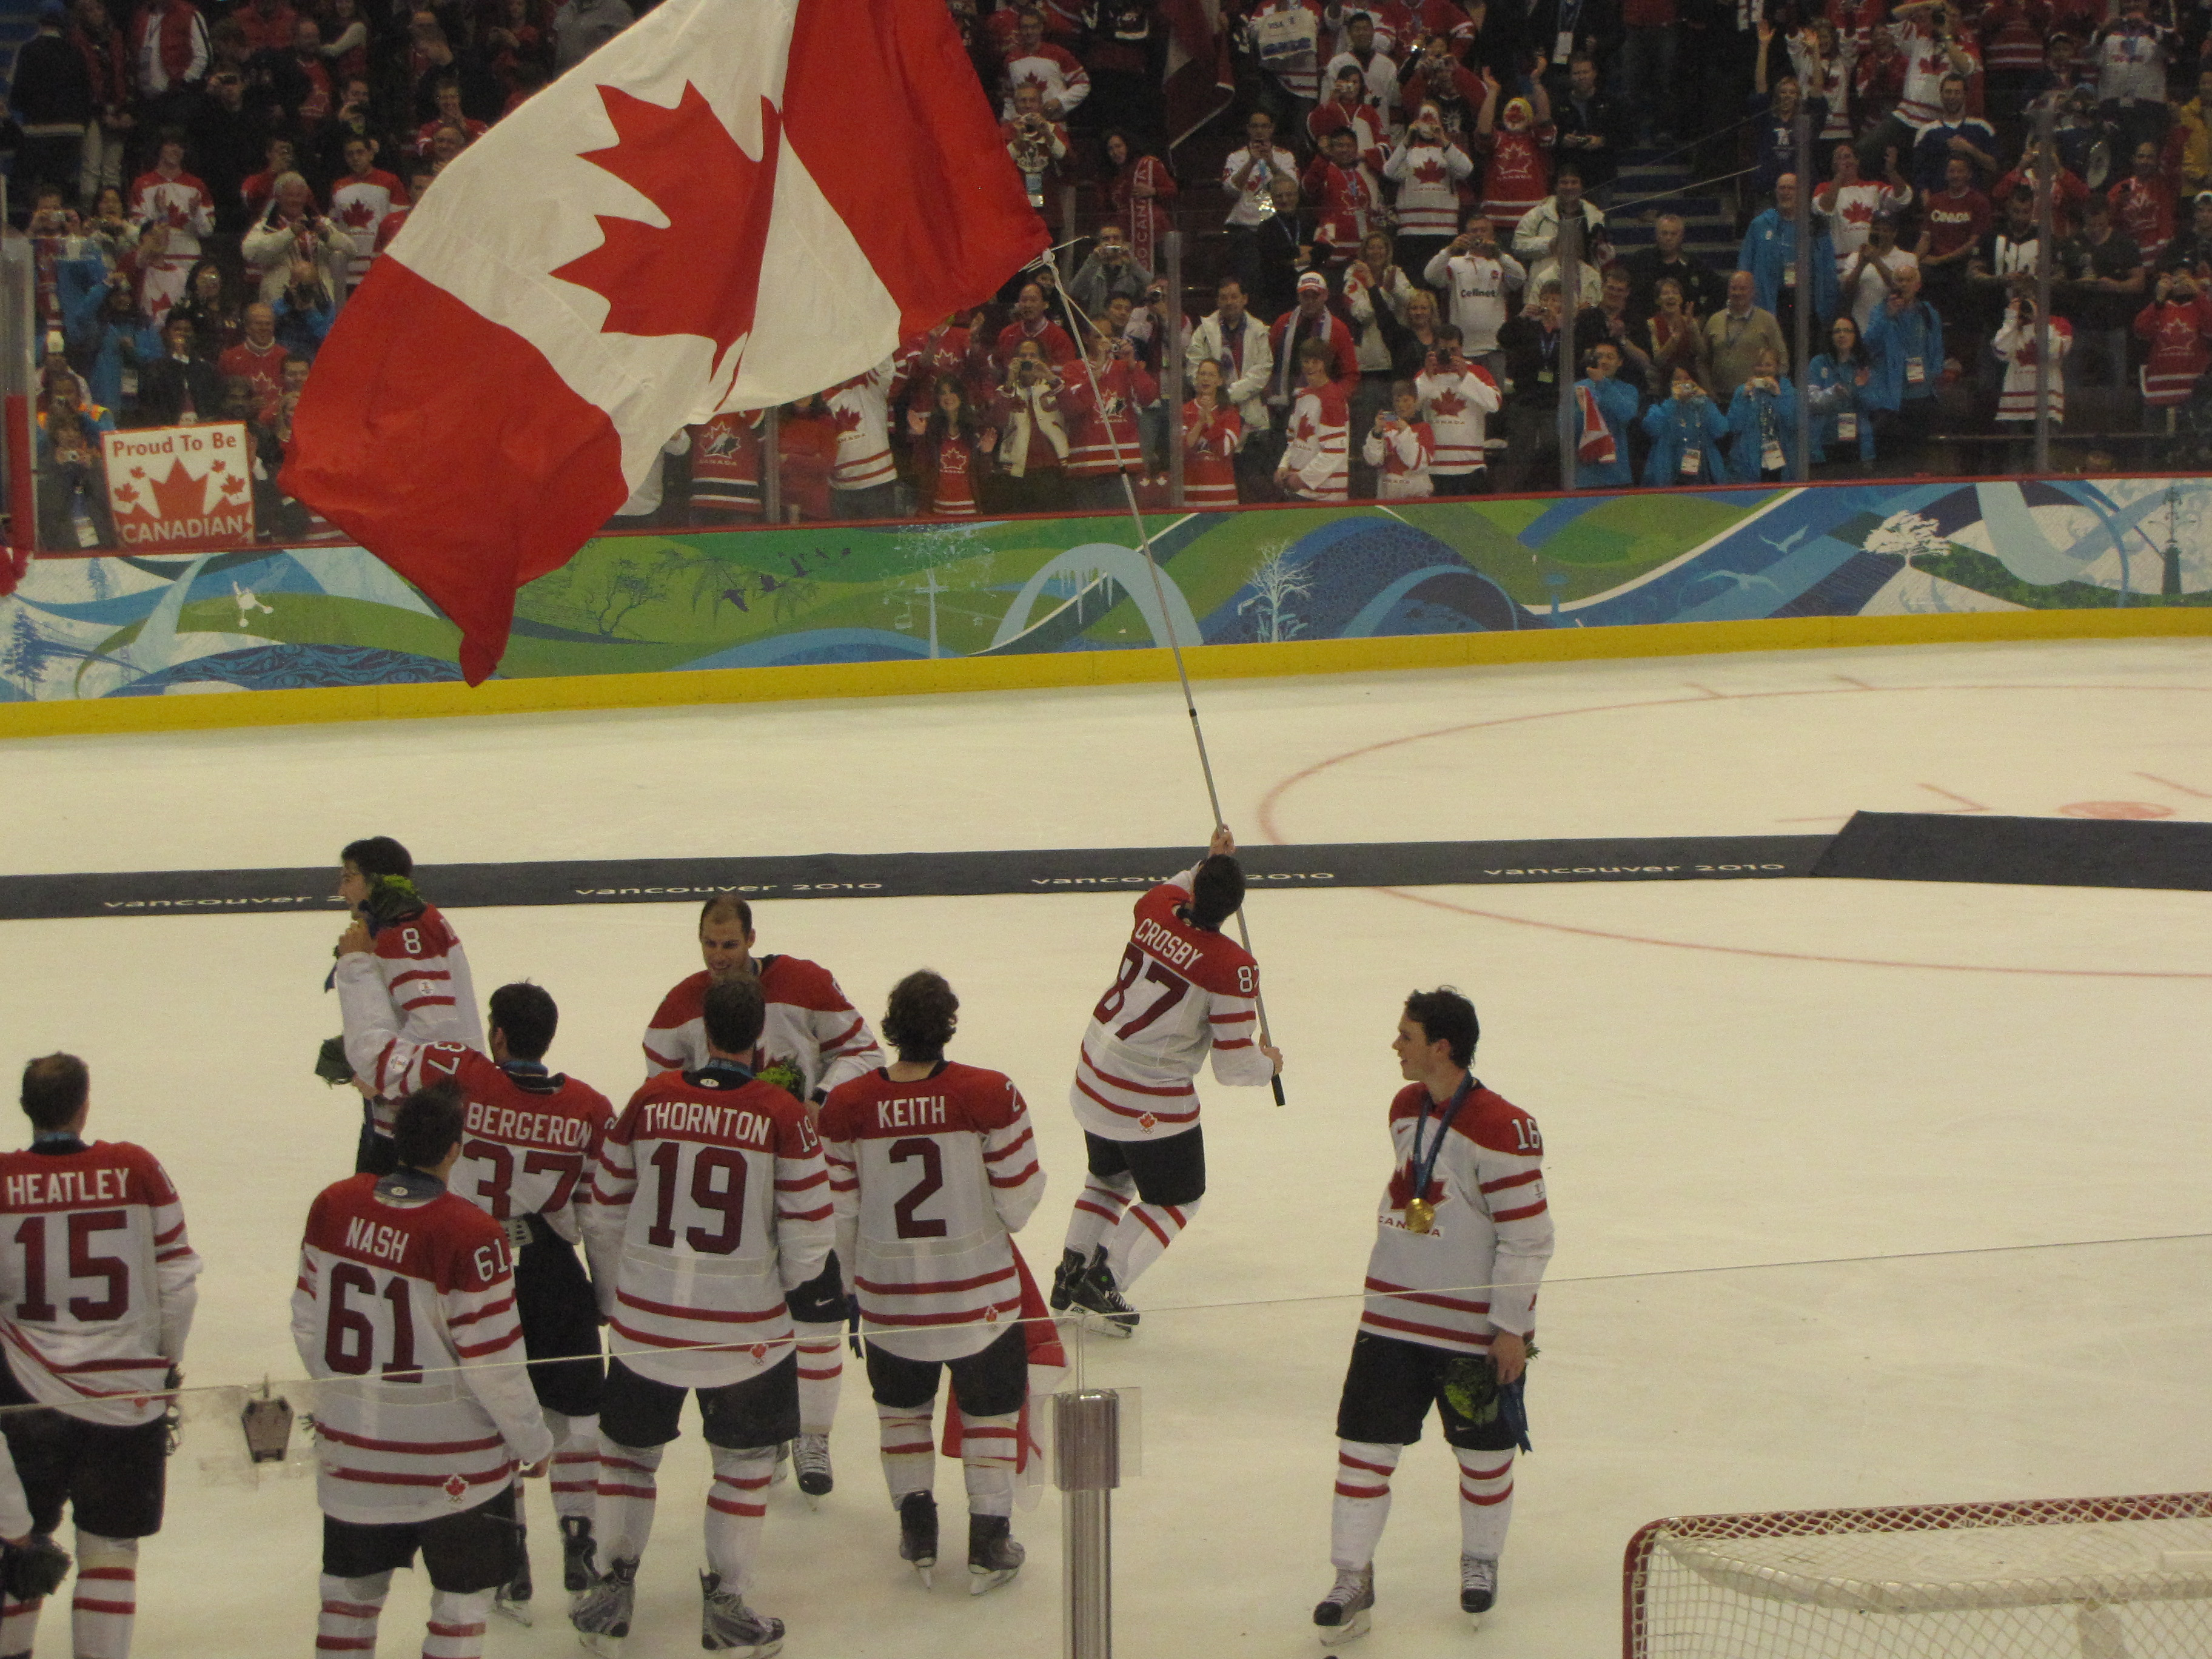 bbedd54a2 HOCKEY. Sid the Kid carries the Canadian flag after giving Canada the win  at the Vancouver Olympics in 2010. – JIM BYERS PHOTO